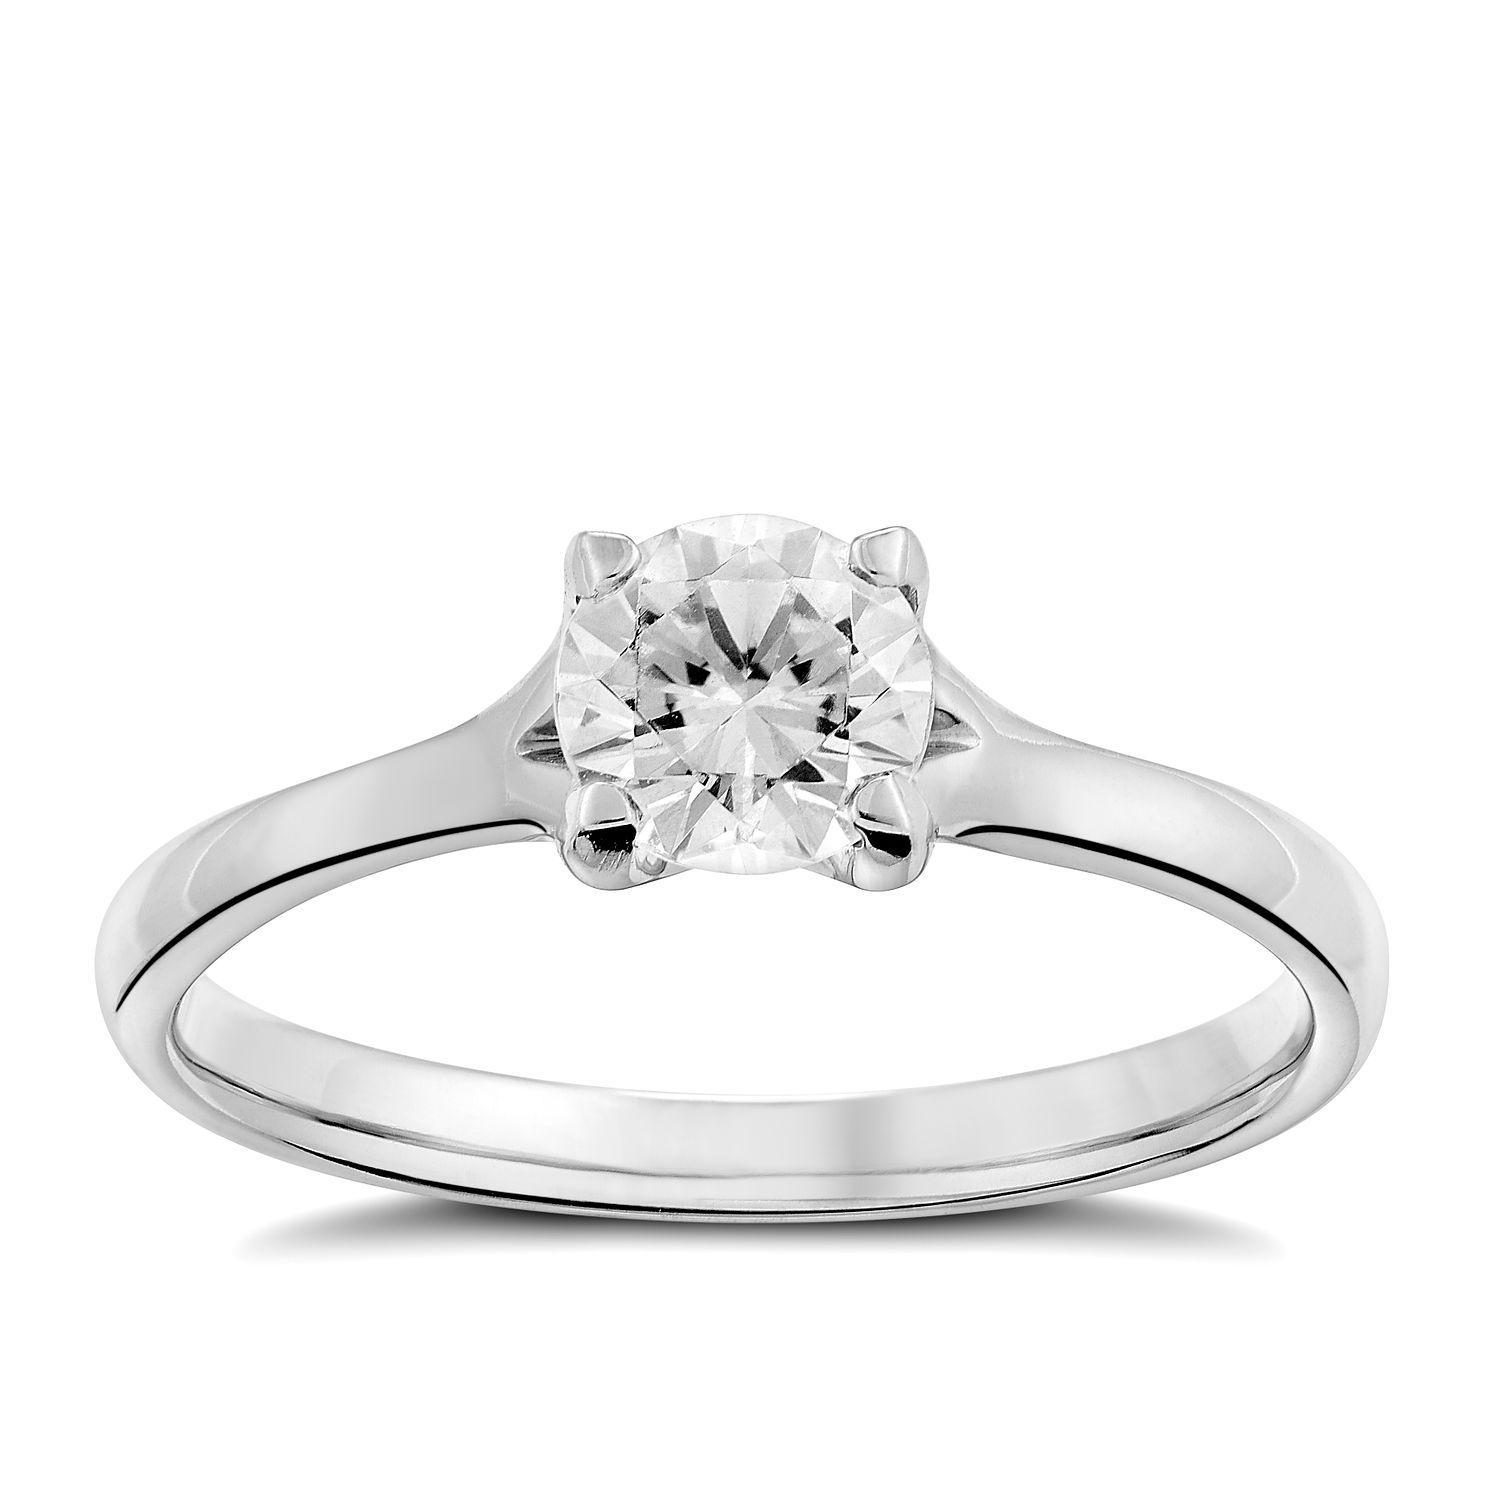 Platinum 0.66ct Diamond Solitaire 4 Claw Ring - Product number 1641565